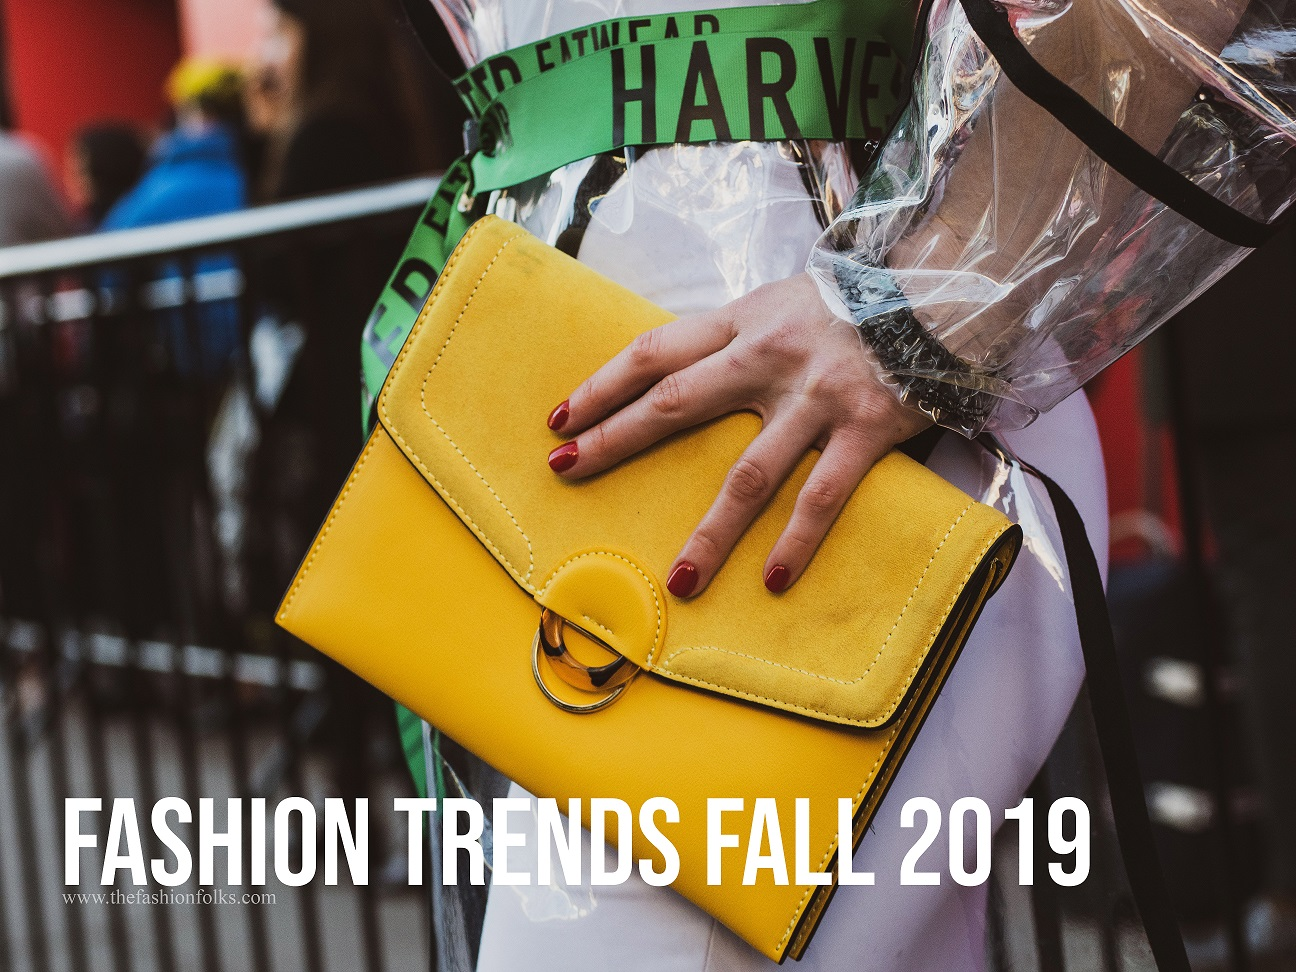 Preview: Fashion Trends Fall 2019